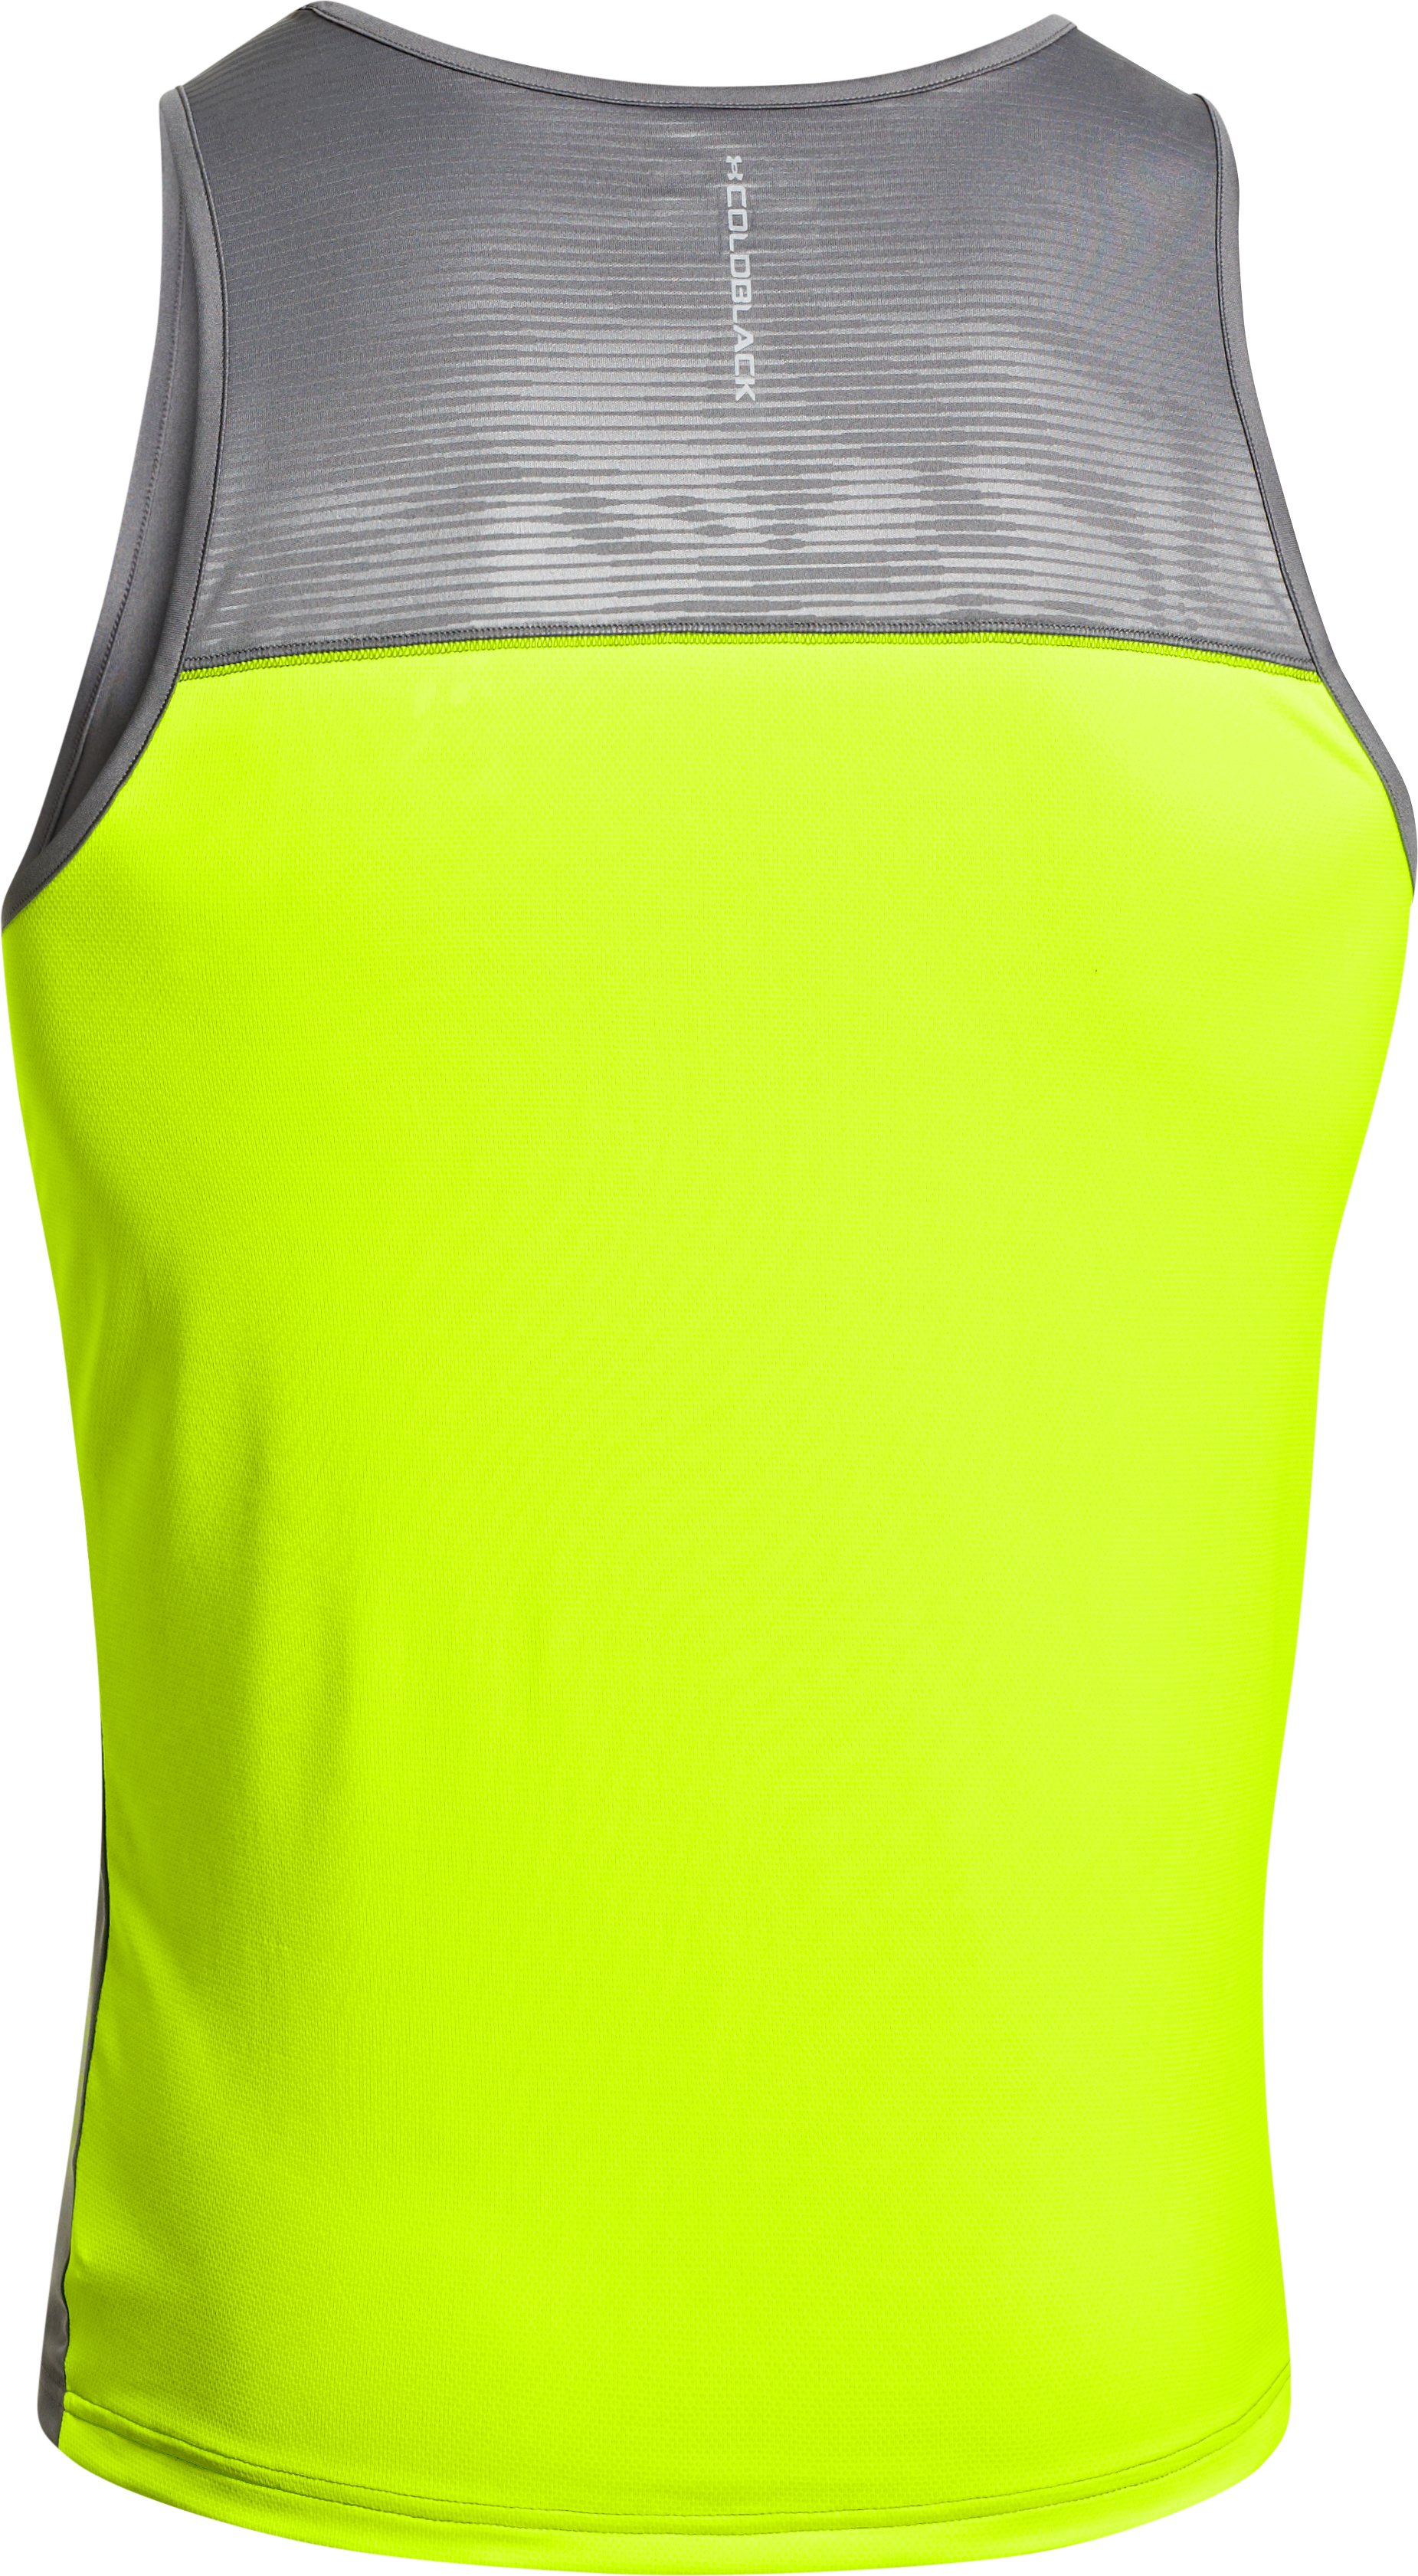 Men's coldblack® Run Singlet, Graphite, undefined